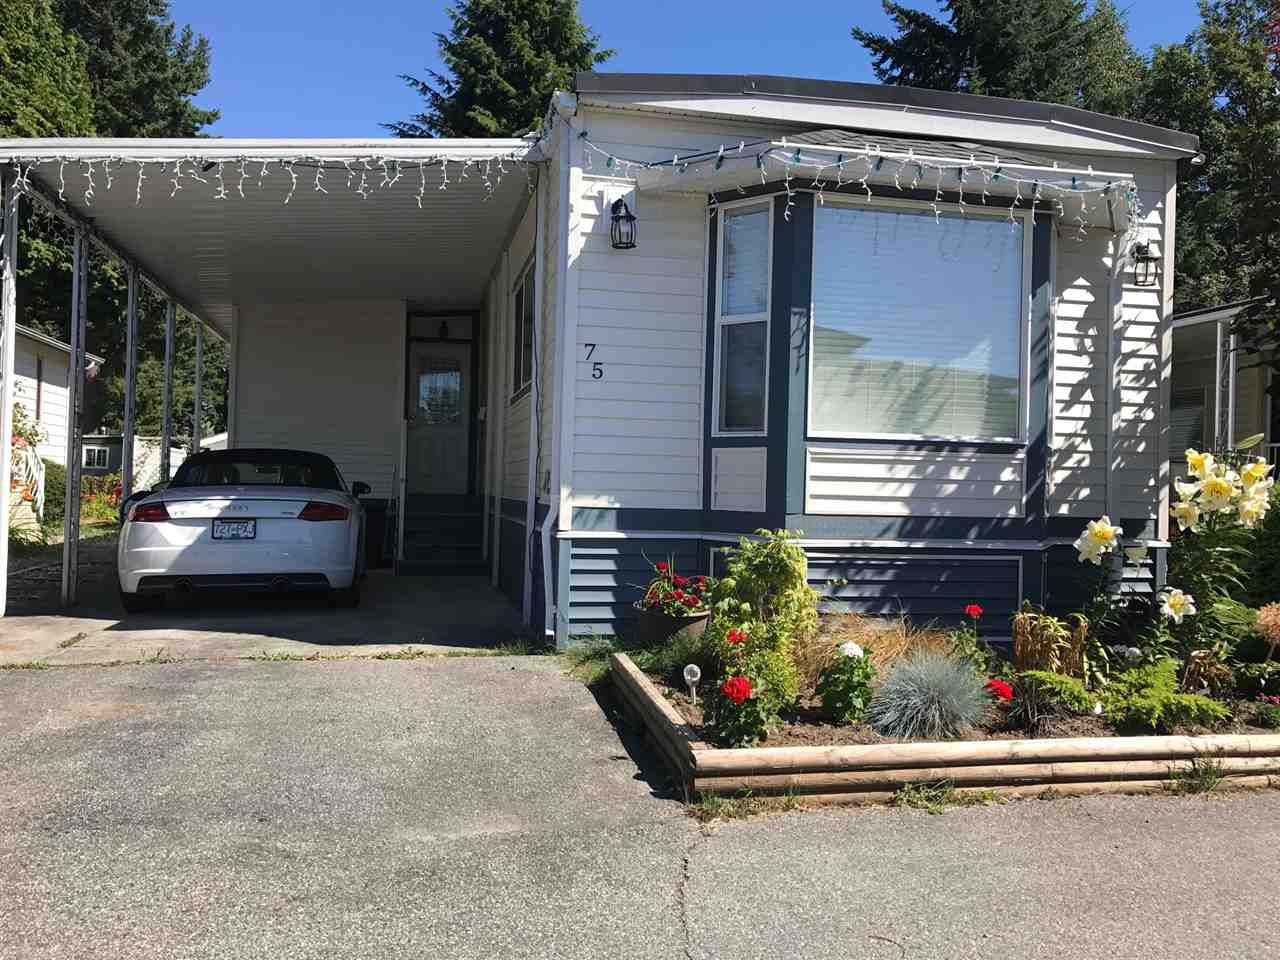 "Main Photo: 75 8560 156 Street in Surrey: Fleetwood Tynehead Manufactured Home for sale in ""Westvilla"" : MLS®# R2194254"